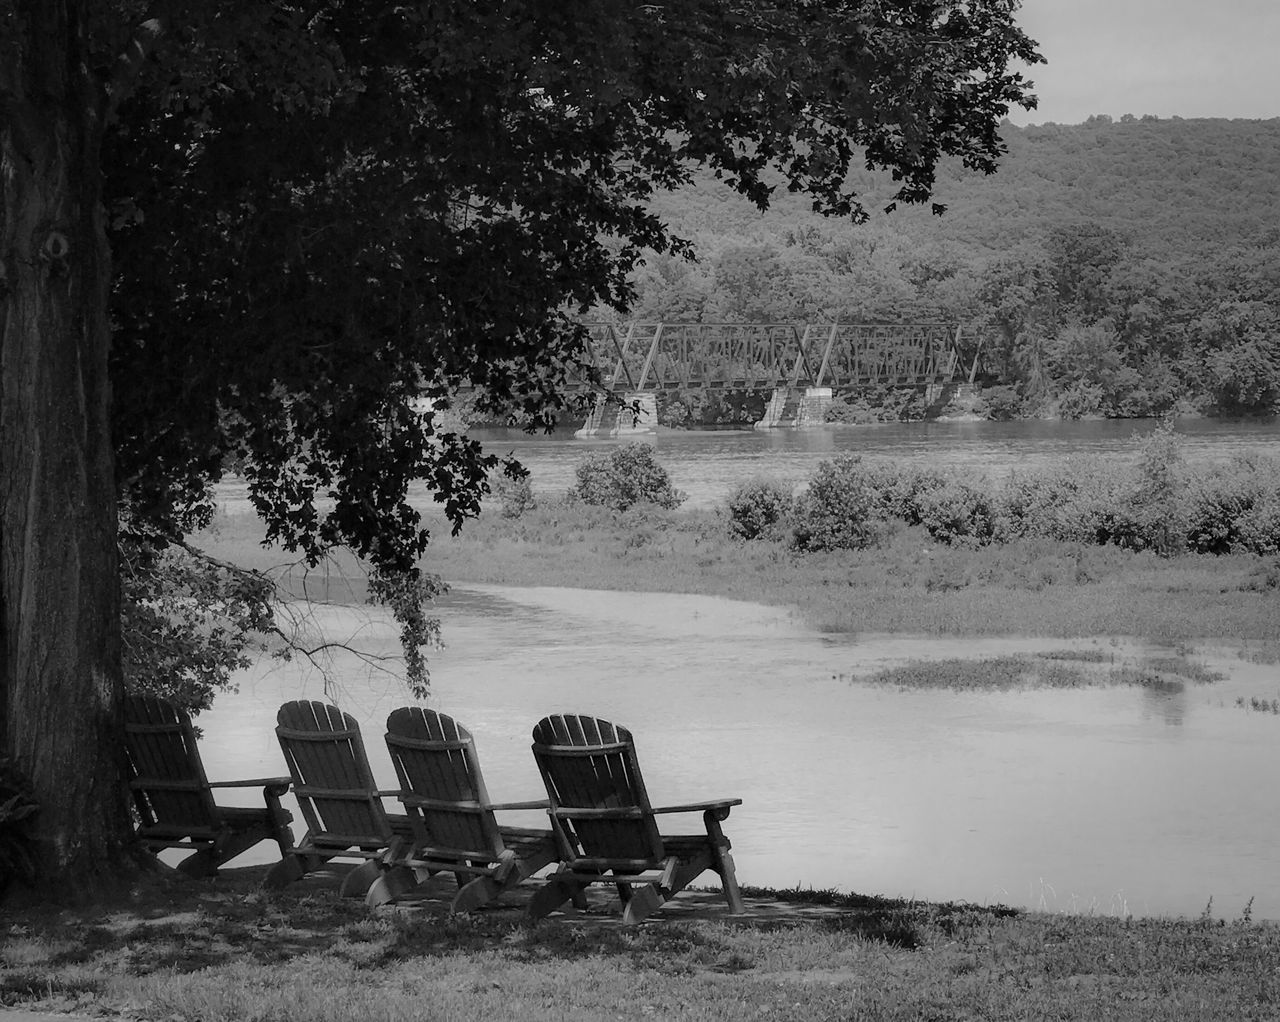 tree, plant, seat, chair, nature, empty, tranquil scene, tranquility, day, no people, absence, beauty in nature, growth, water, scenics - nature, outdoors, relaxation, land, lake, park bench